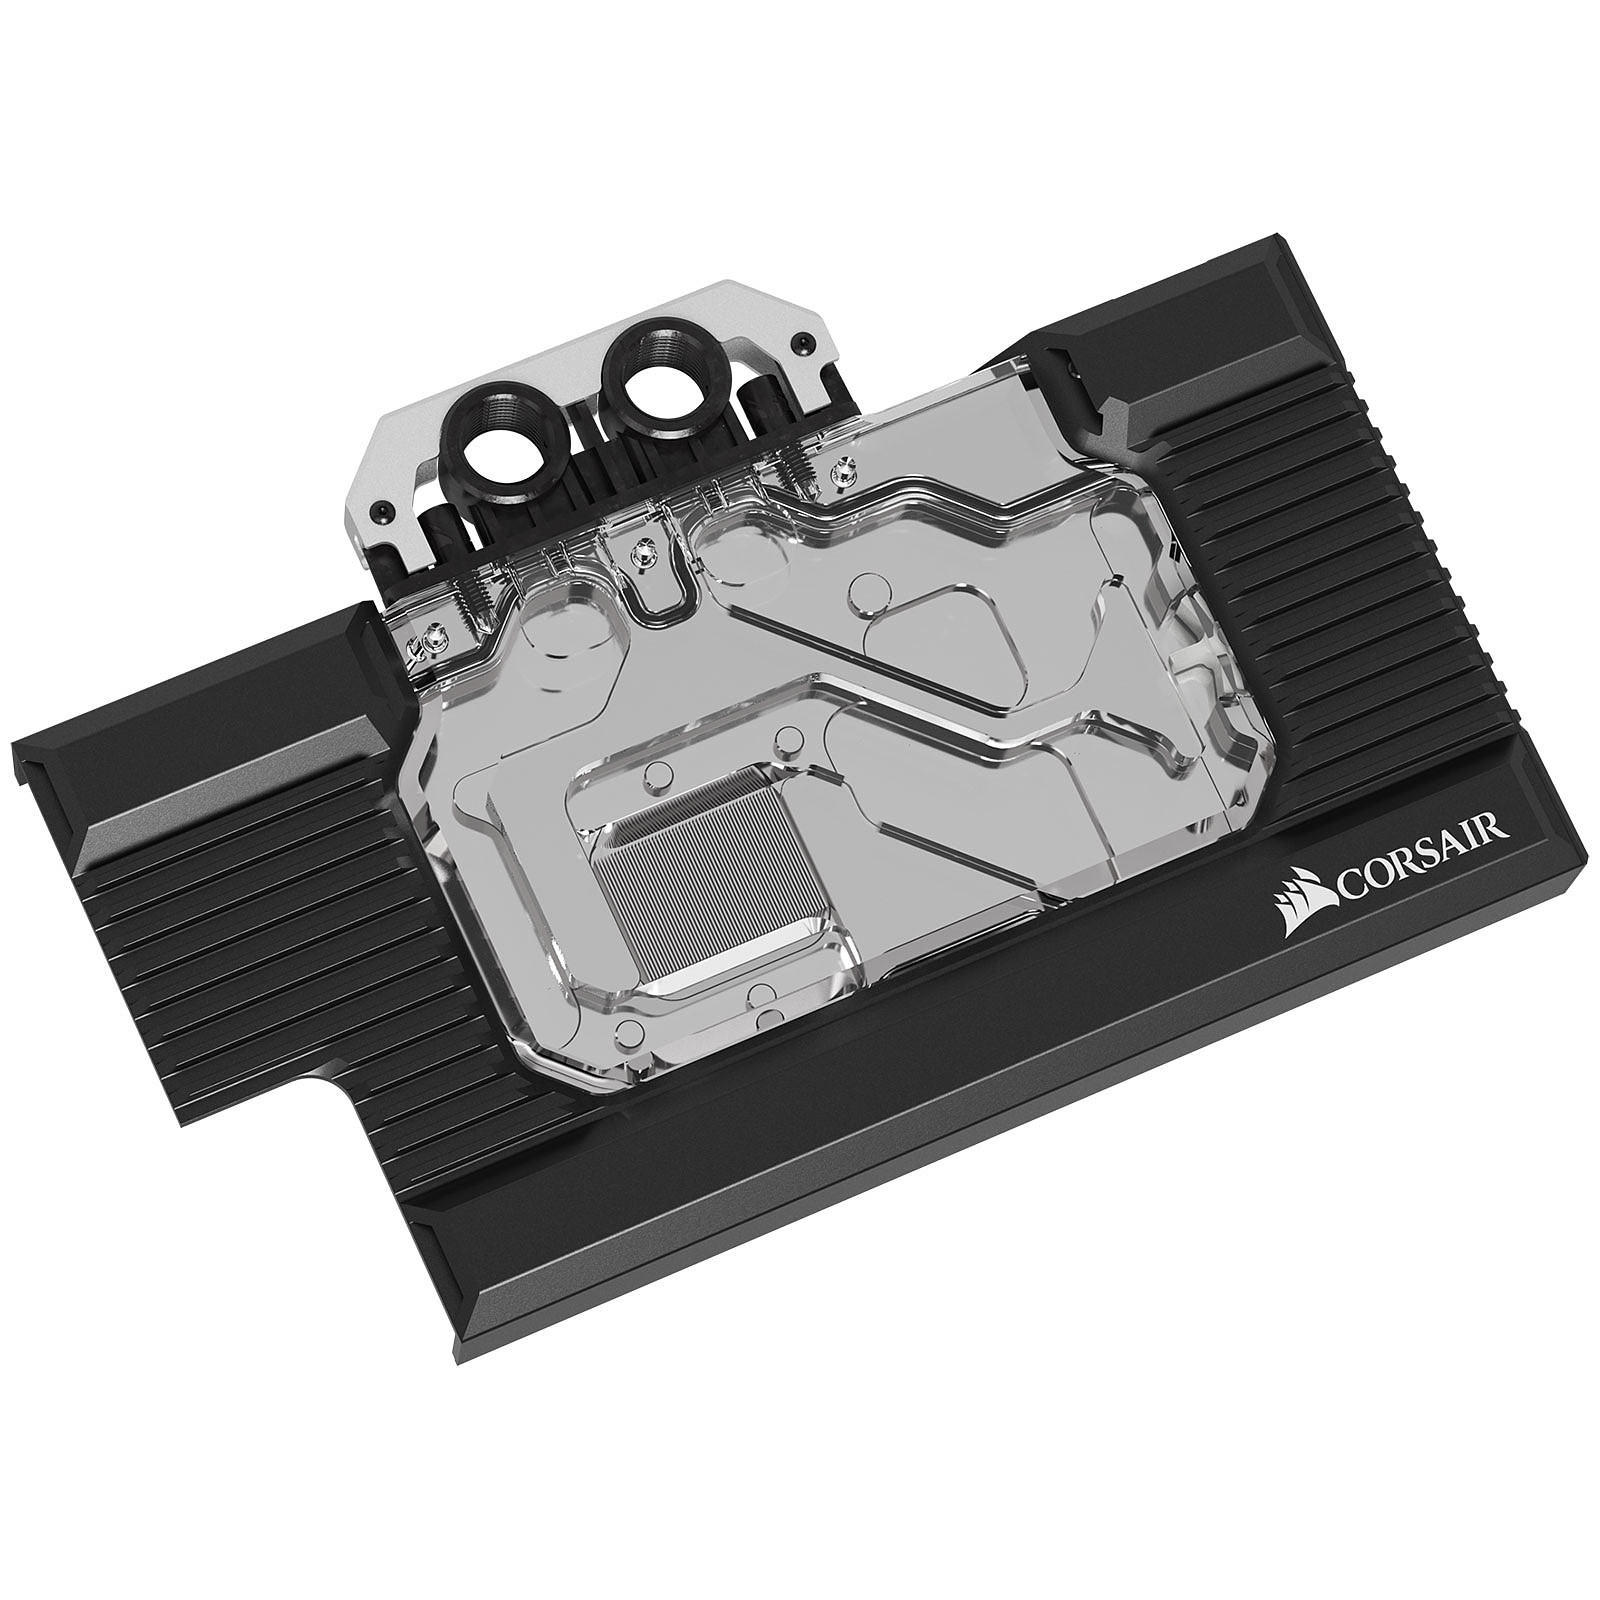 Corsair Hydro X Series XG7 RGB GPU Water Block 2070 FE